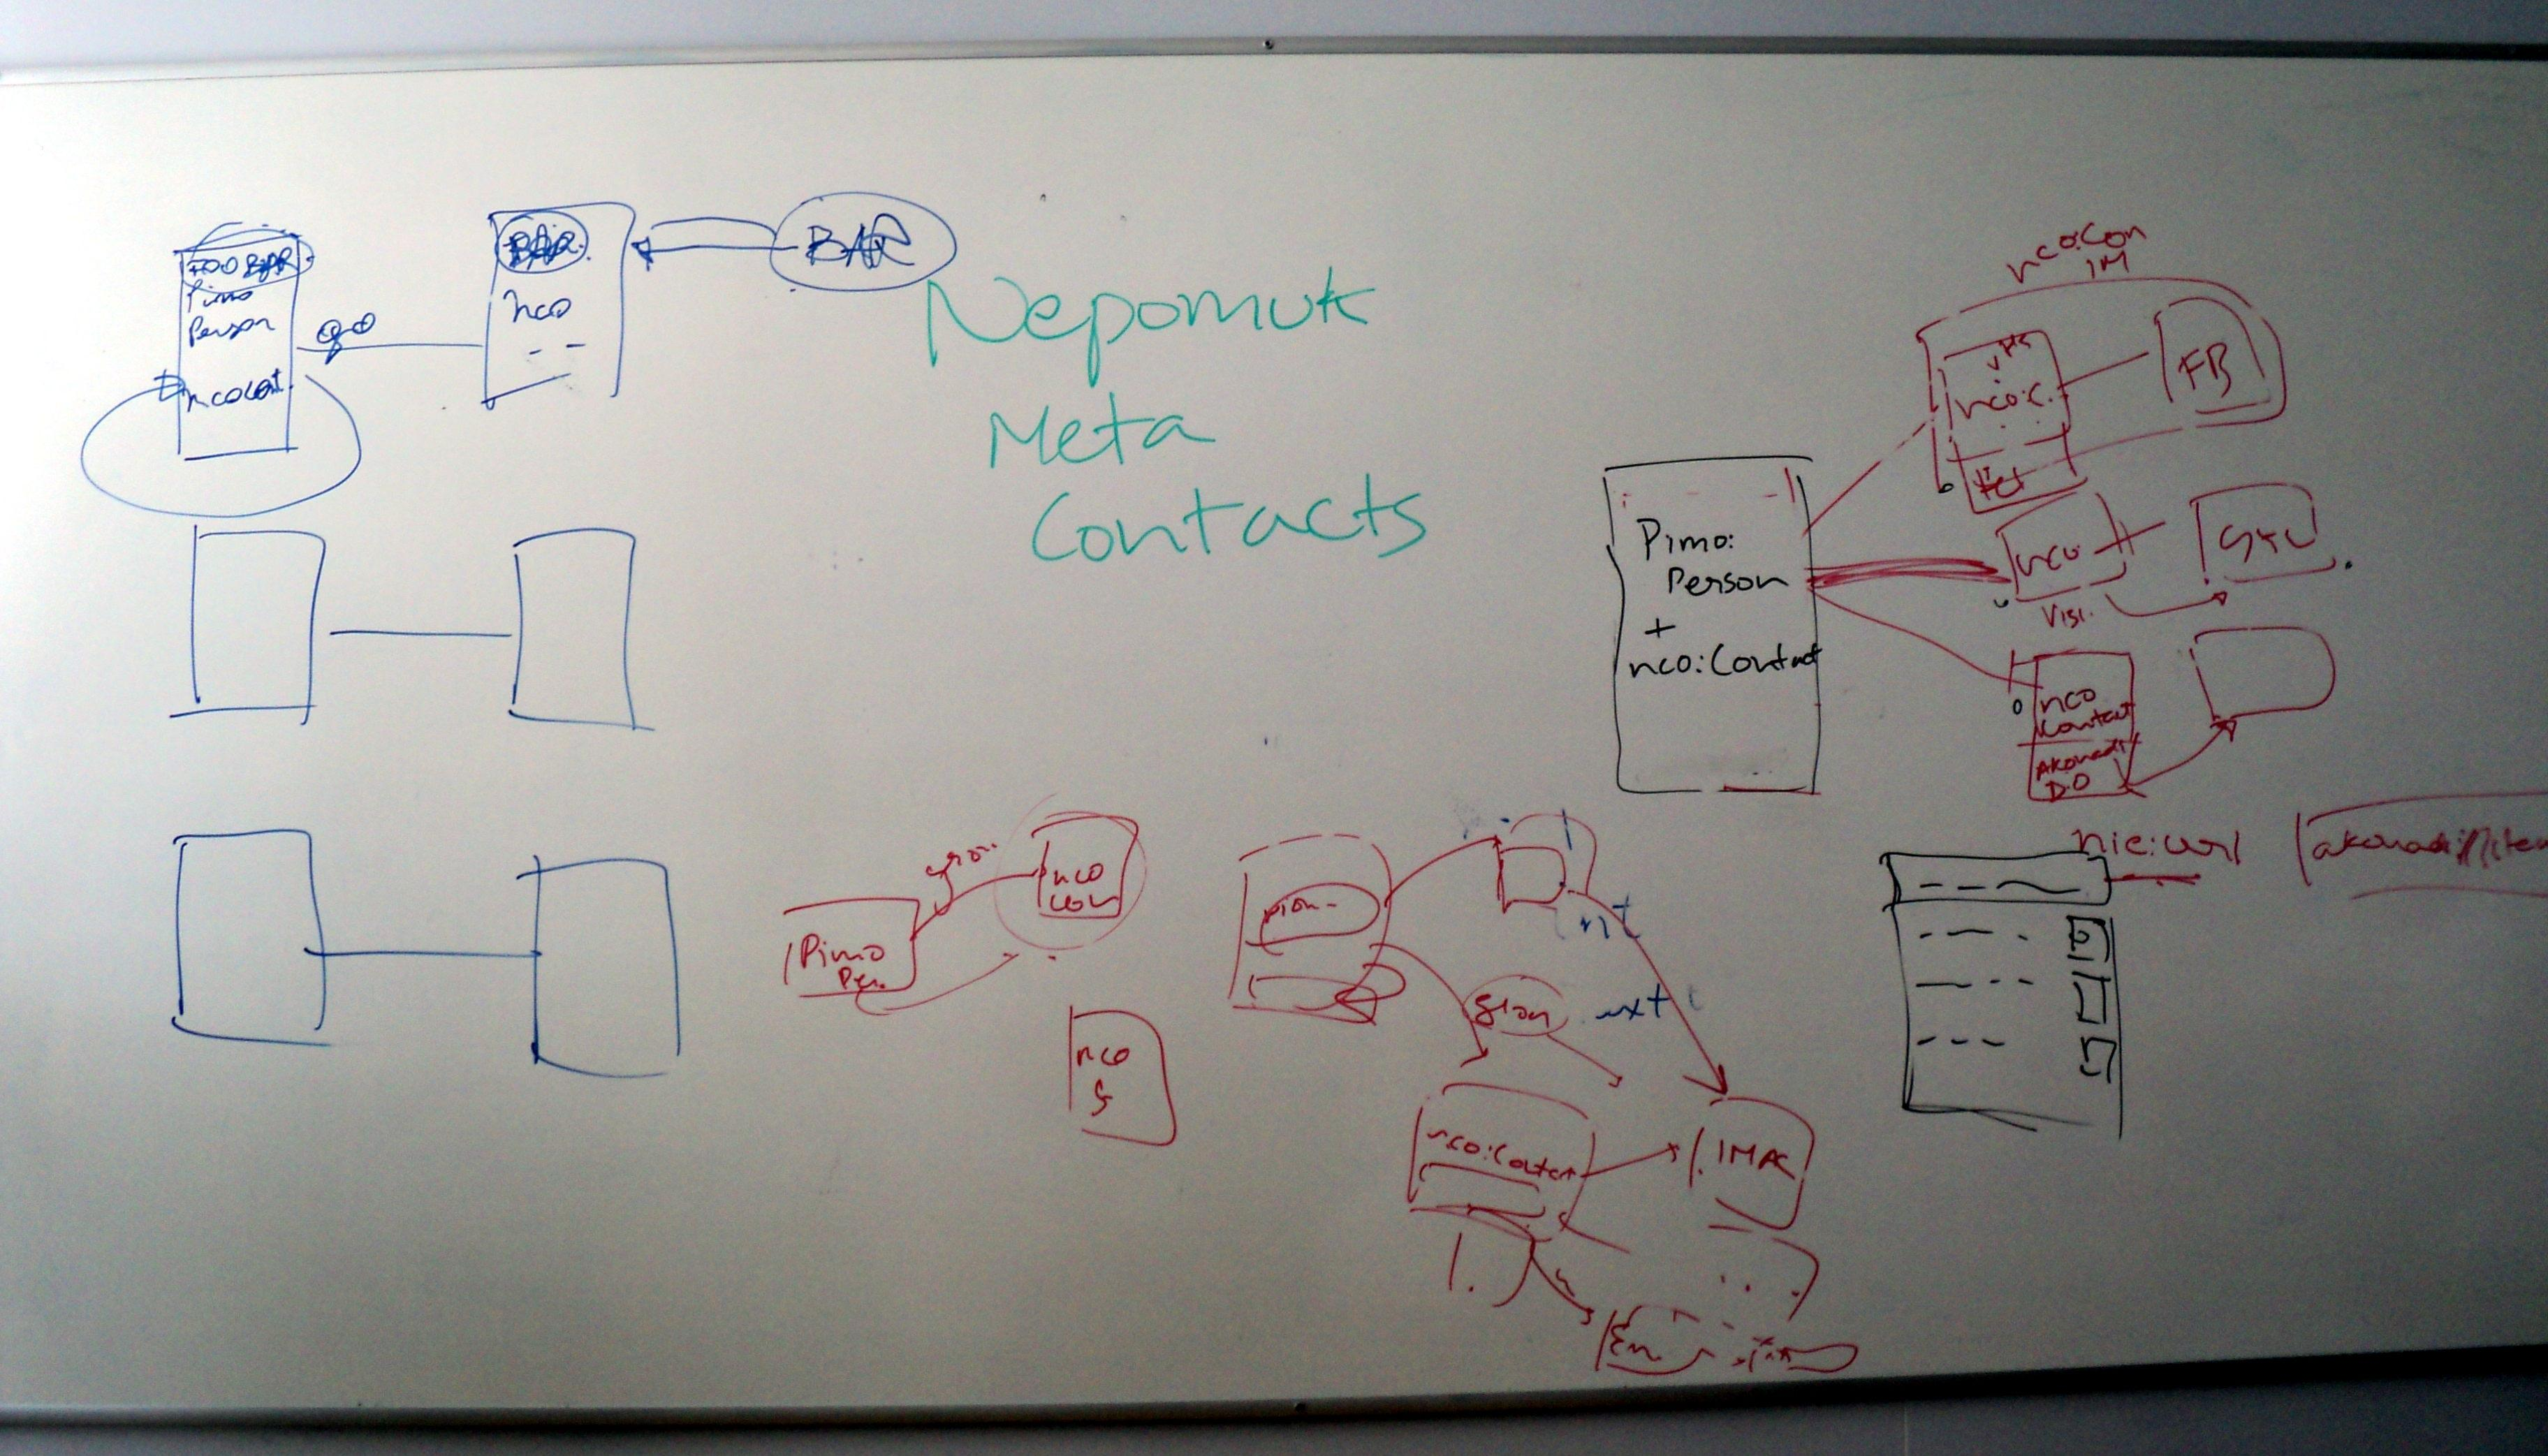 Meta Contact Whiteboard